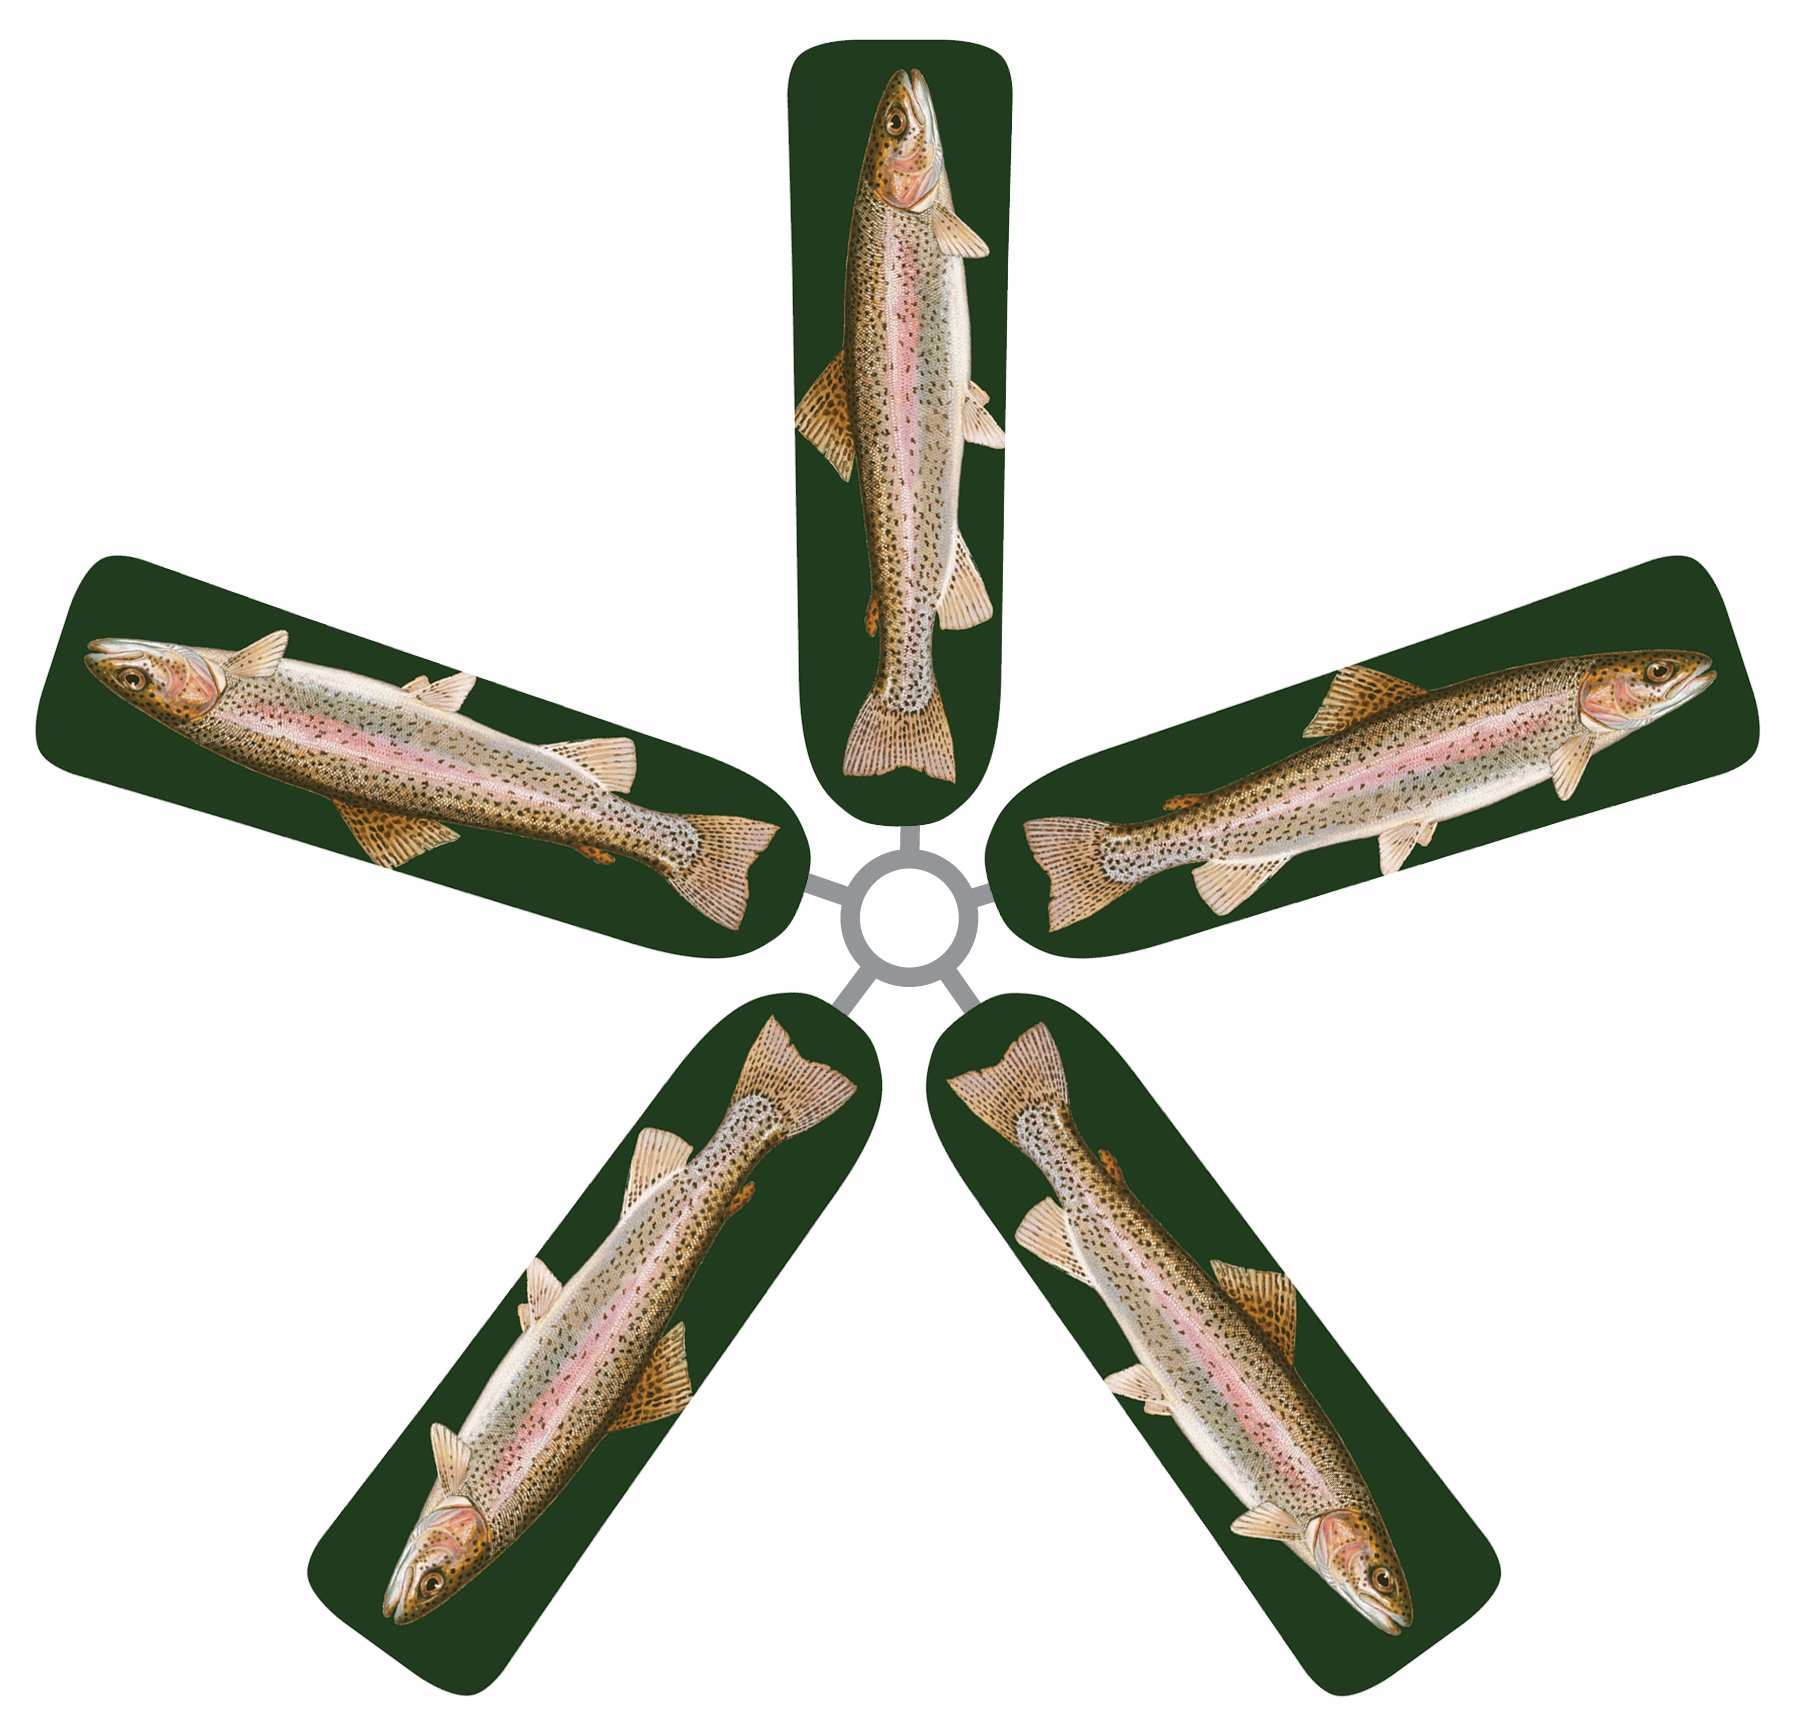 Fan Blade Designs Rainbow Trout Ceiling Fan Blade Covers